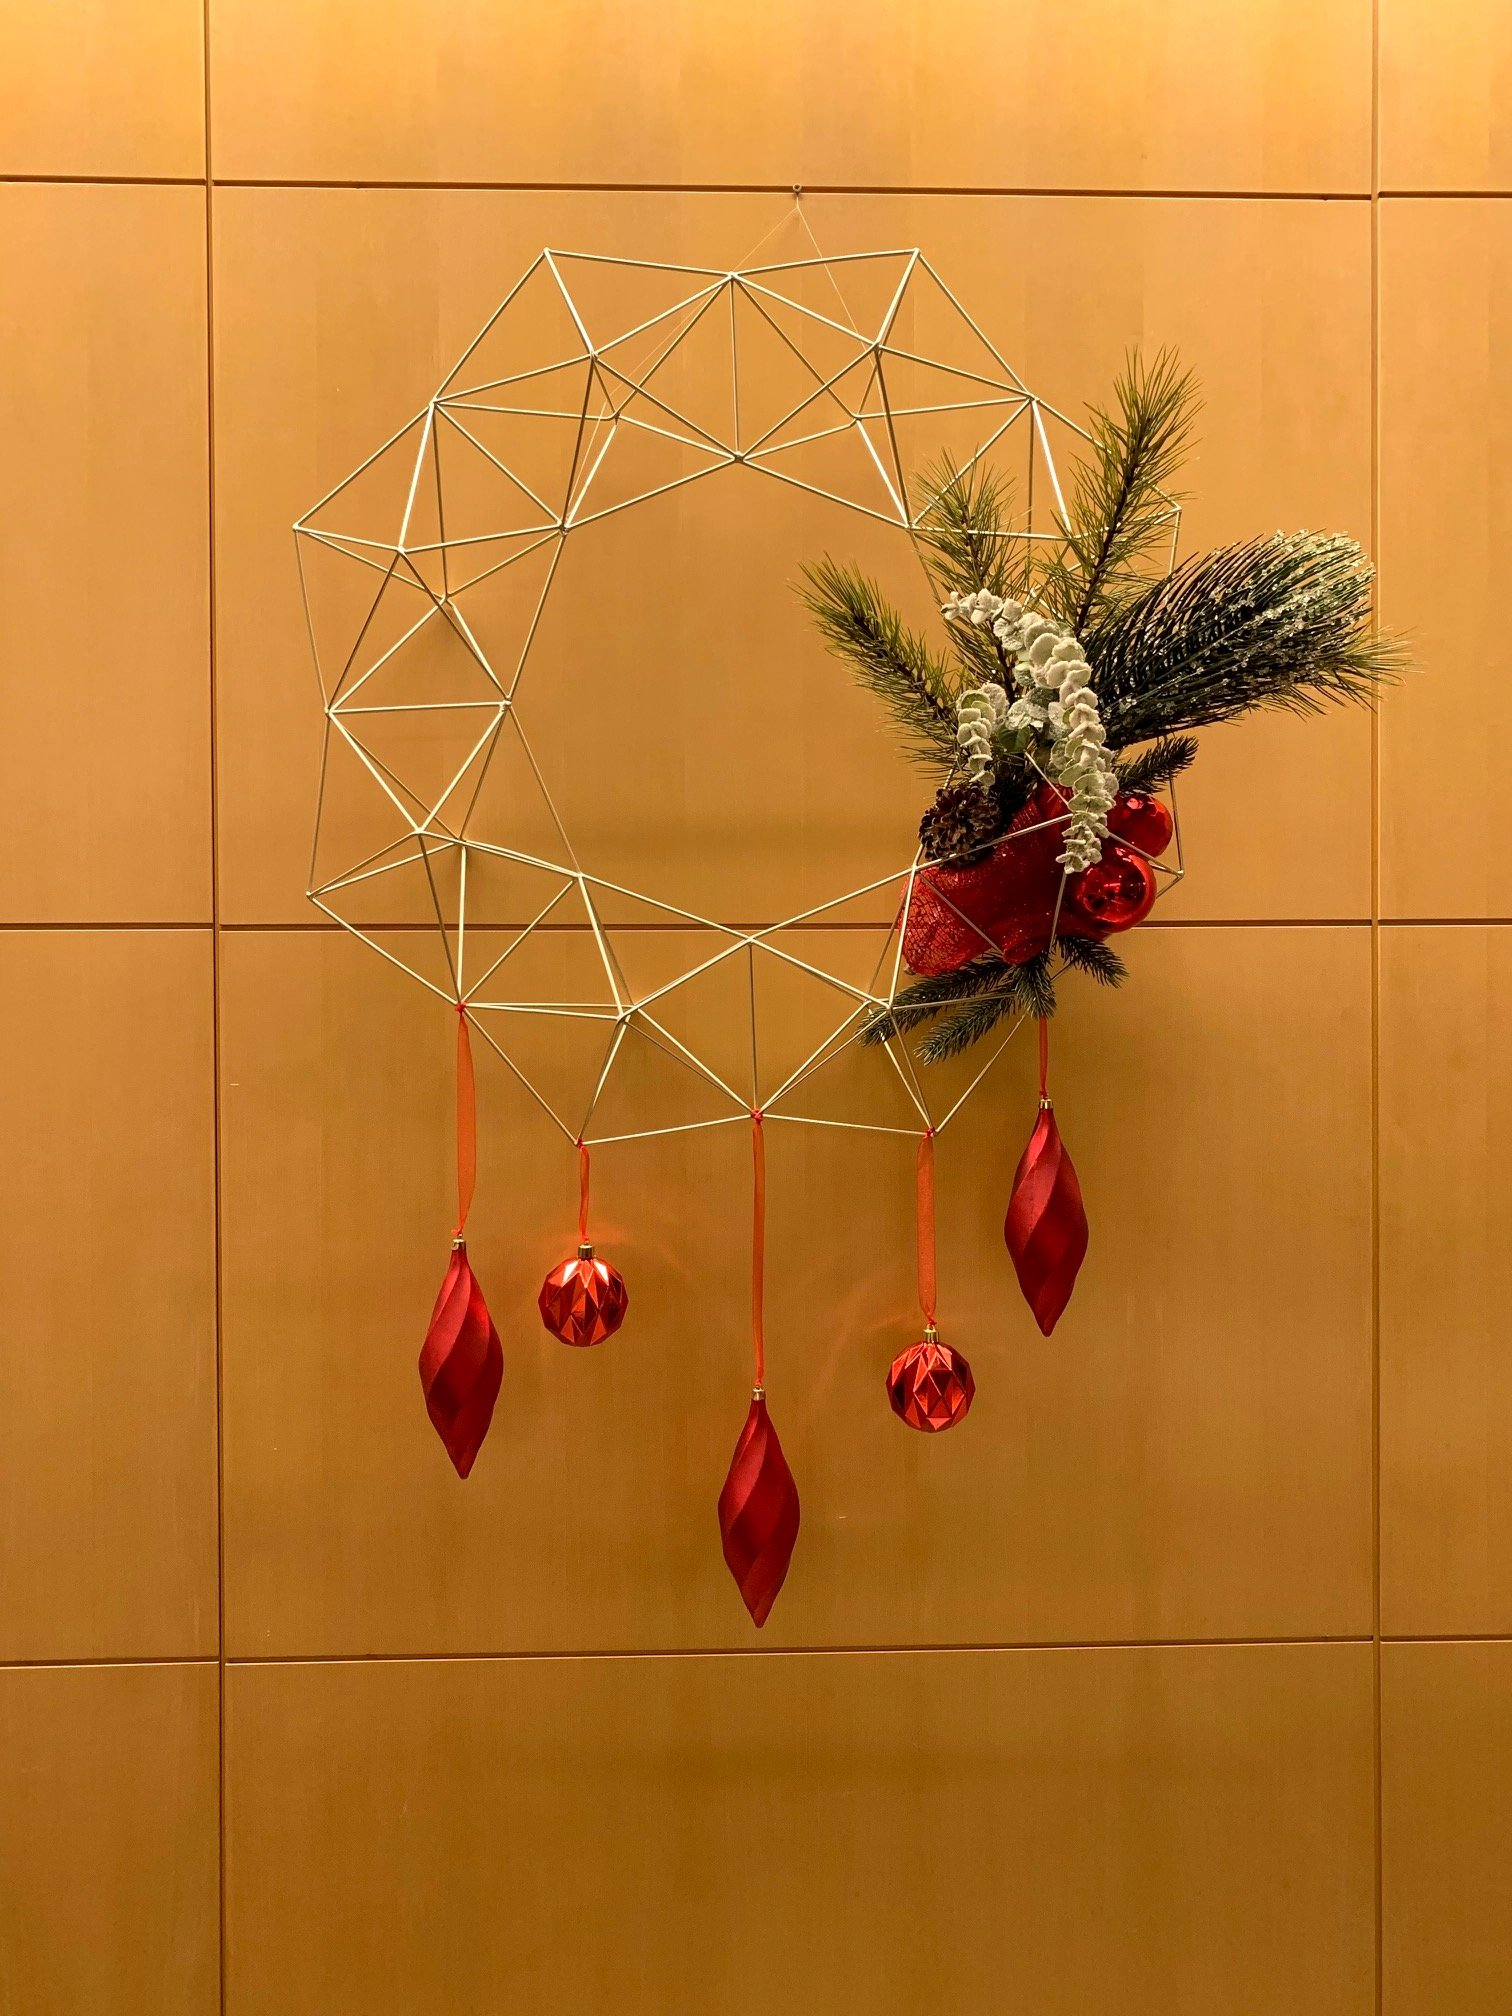 Wire geometric wreath with hanging red ornaments and green garland accent hanging on wood wall